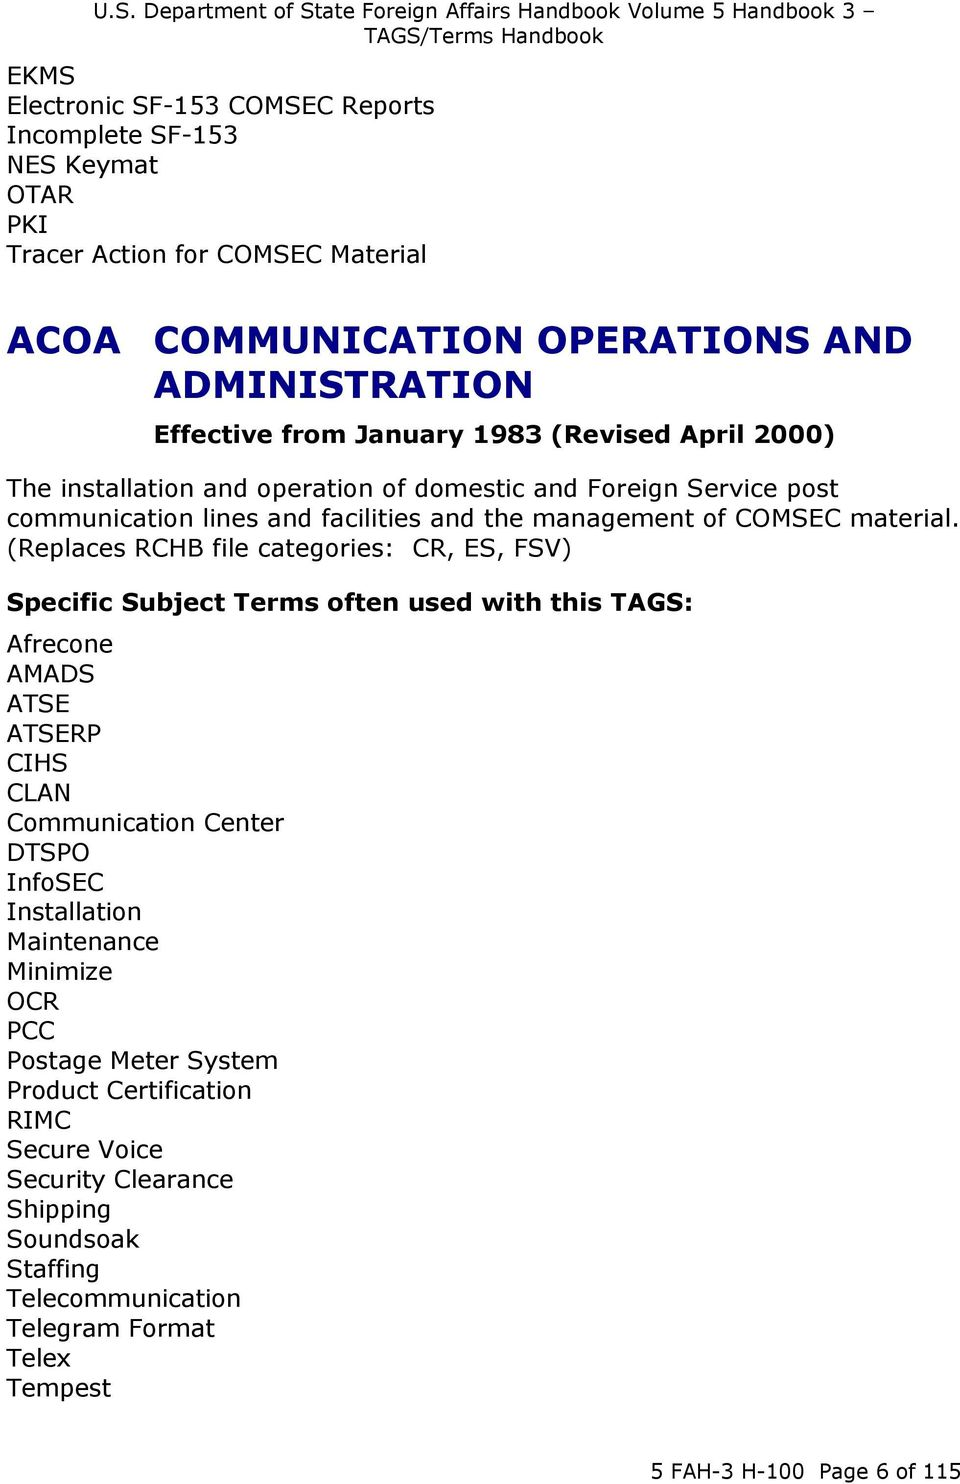 (Replaces RCHB file categories: CR, ES, FSV) Specific Subject Terms often used with this TAGS: Afrecone AMADS ATSE ATSERP CIHS CLAN Communication Center DTSPO InfoSEC Installation